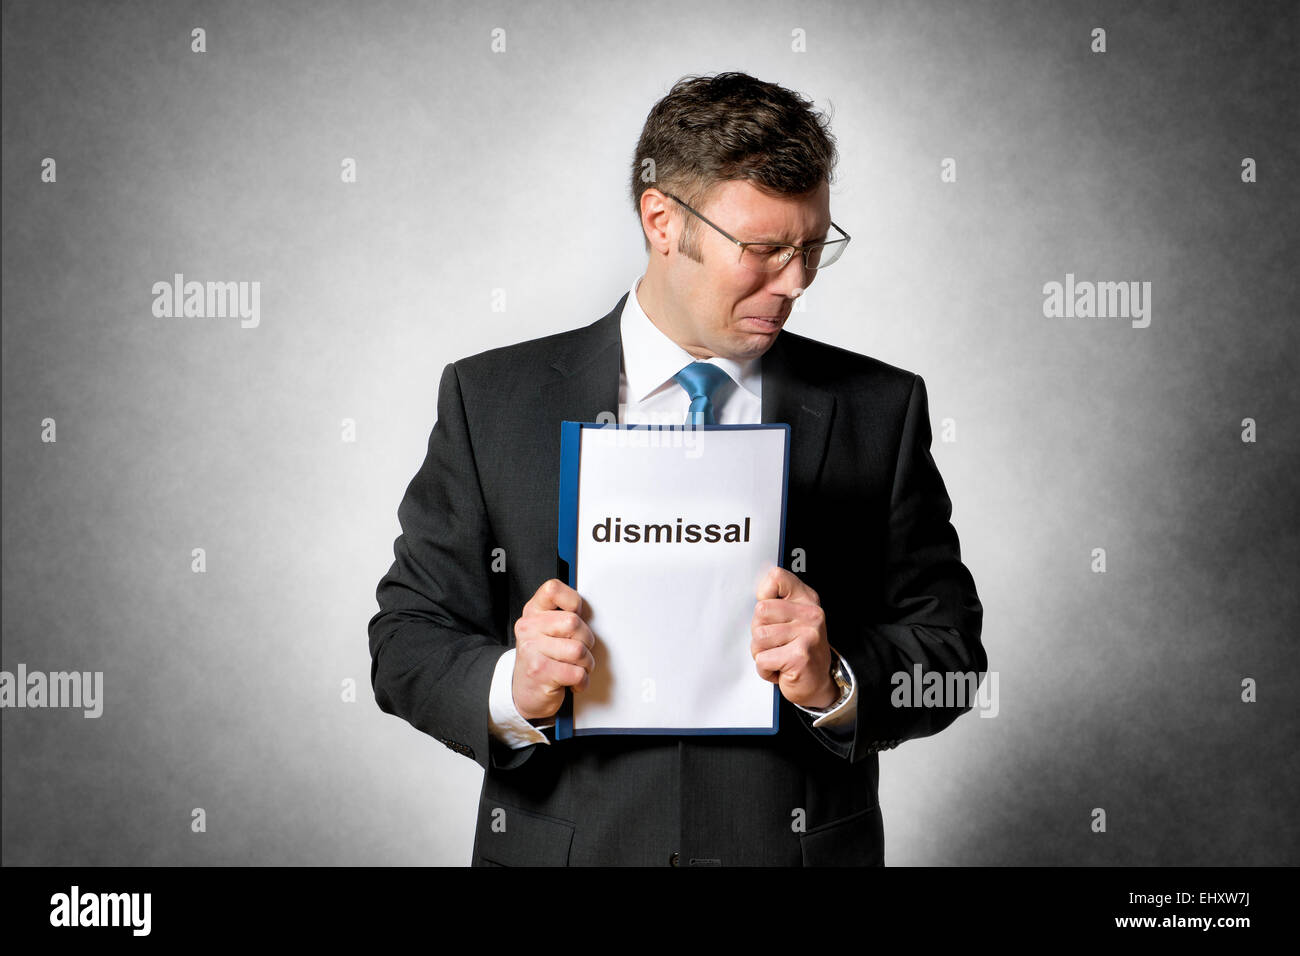 Image of frustrated business man who is fired - Stock Image